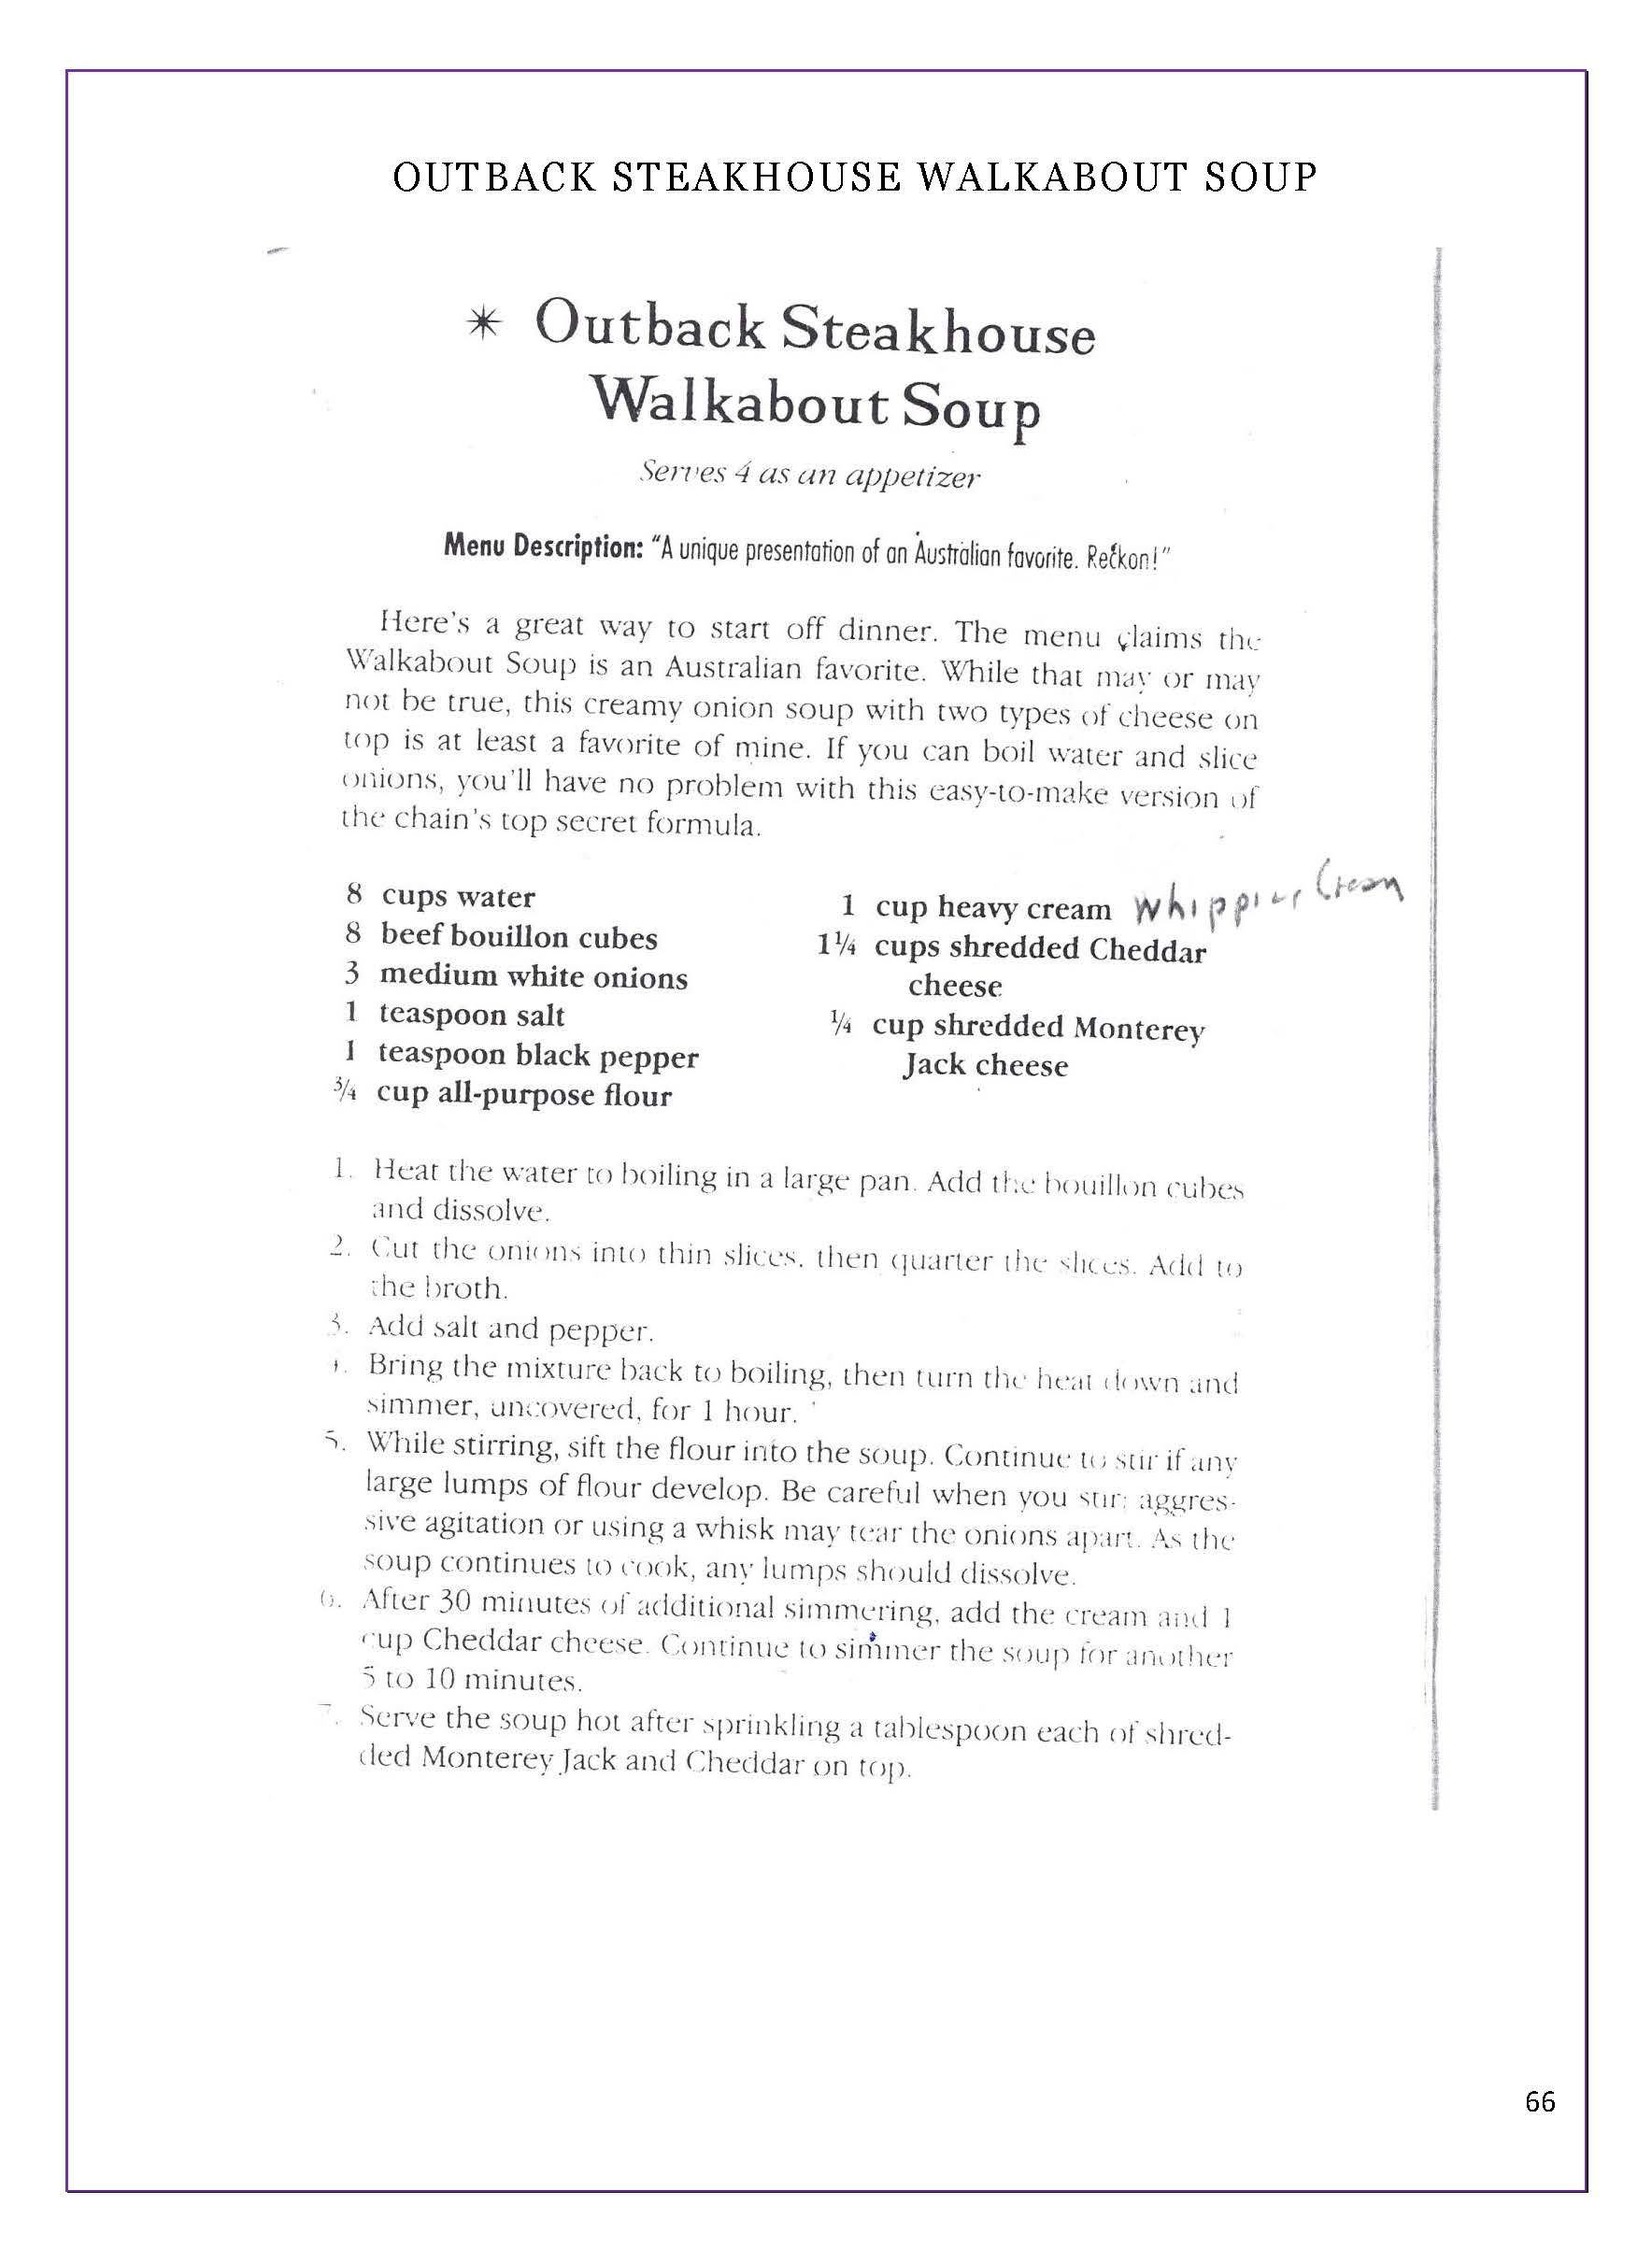 Page 66 - Outback Steakhouse Walkabout Soup | A Taste of Home ...